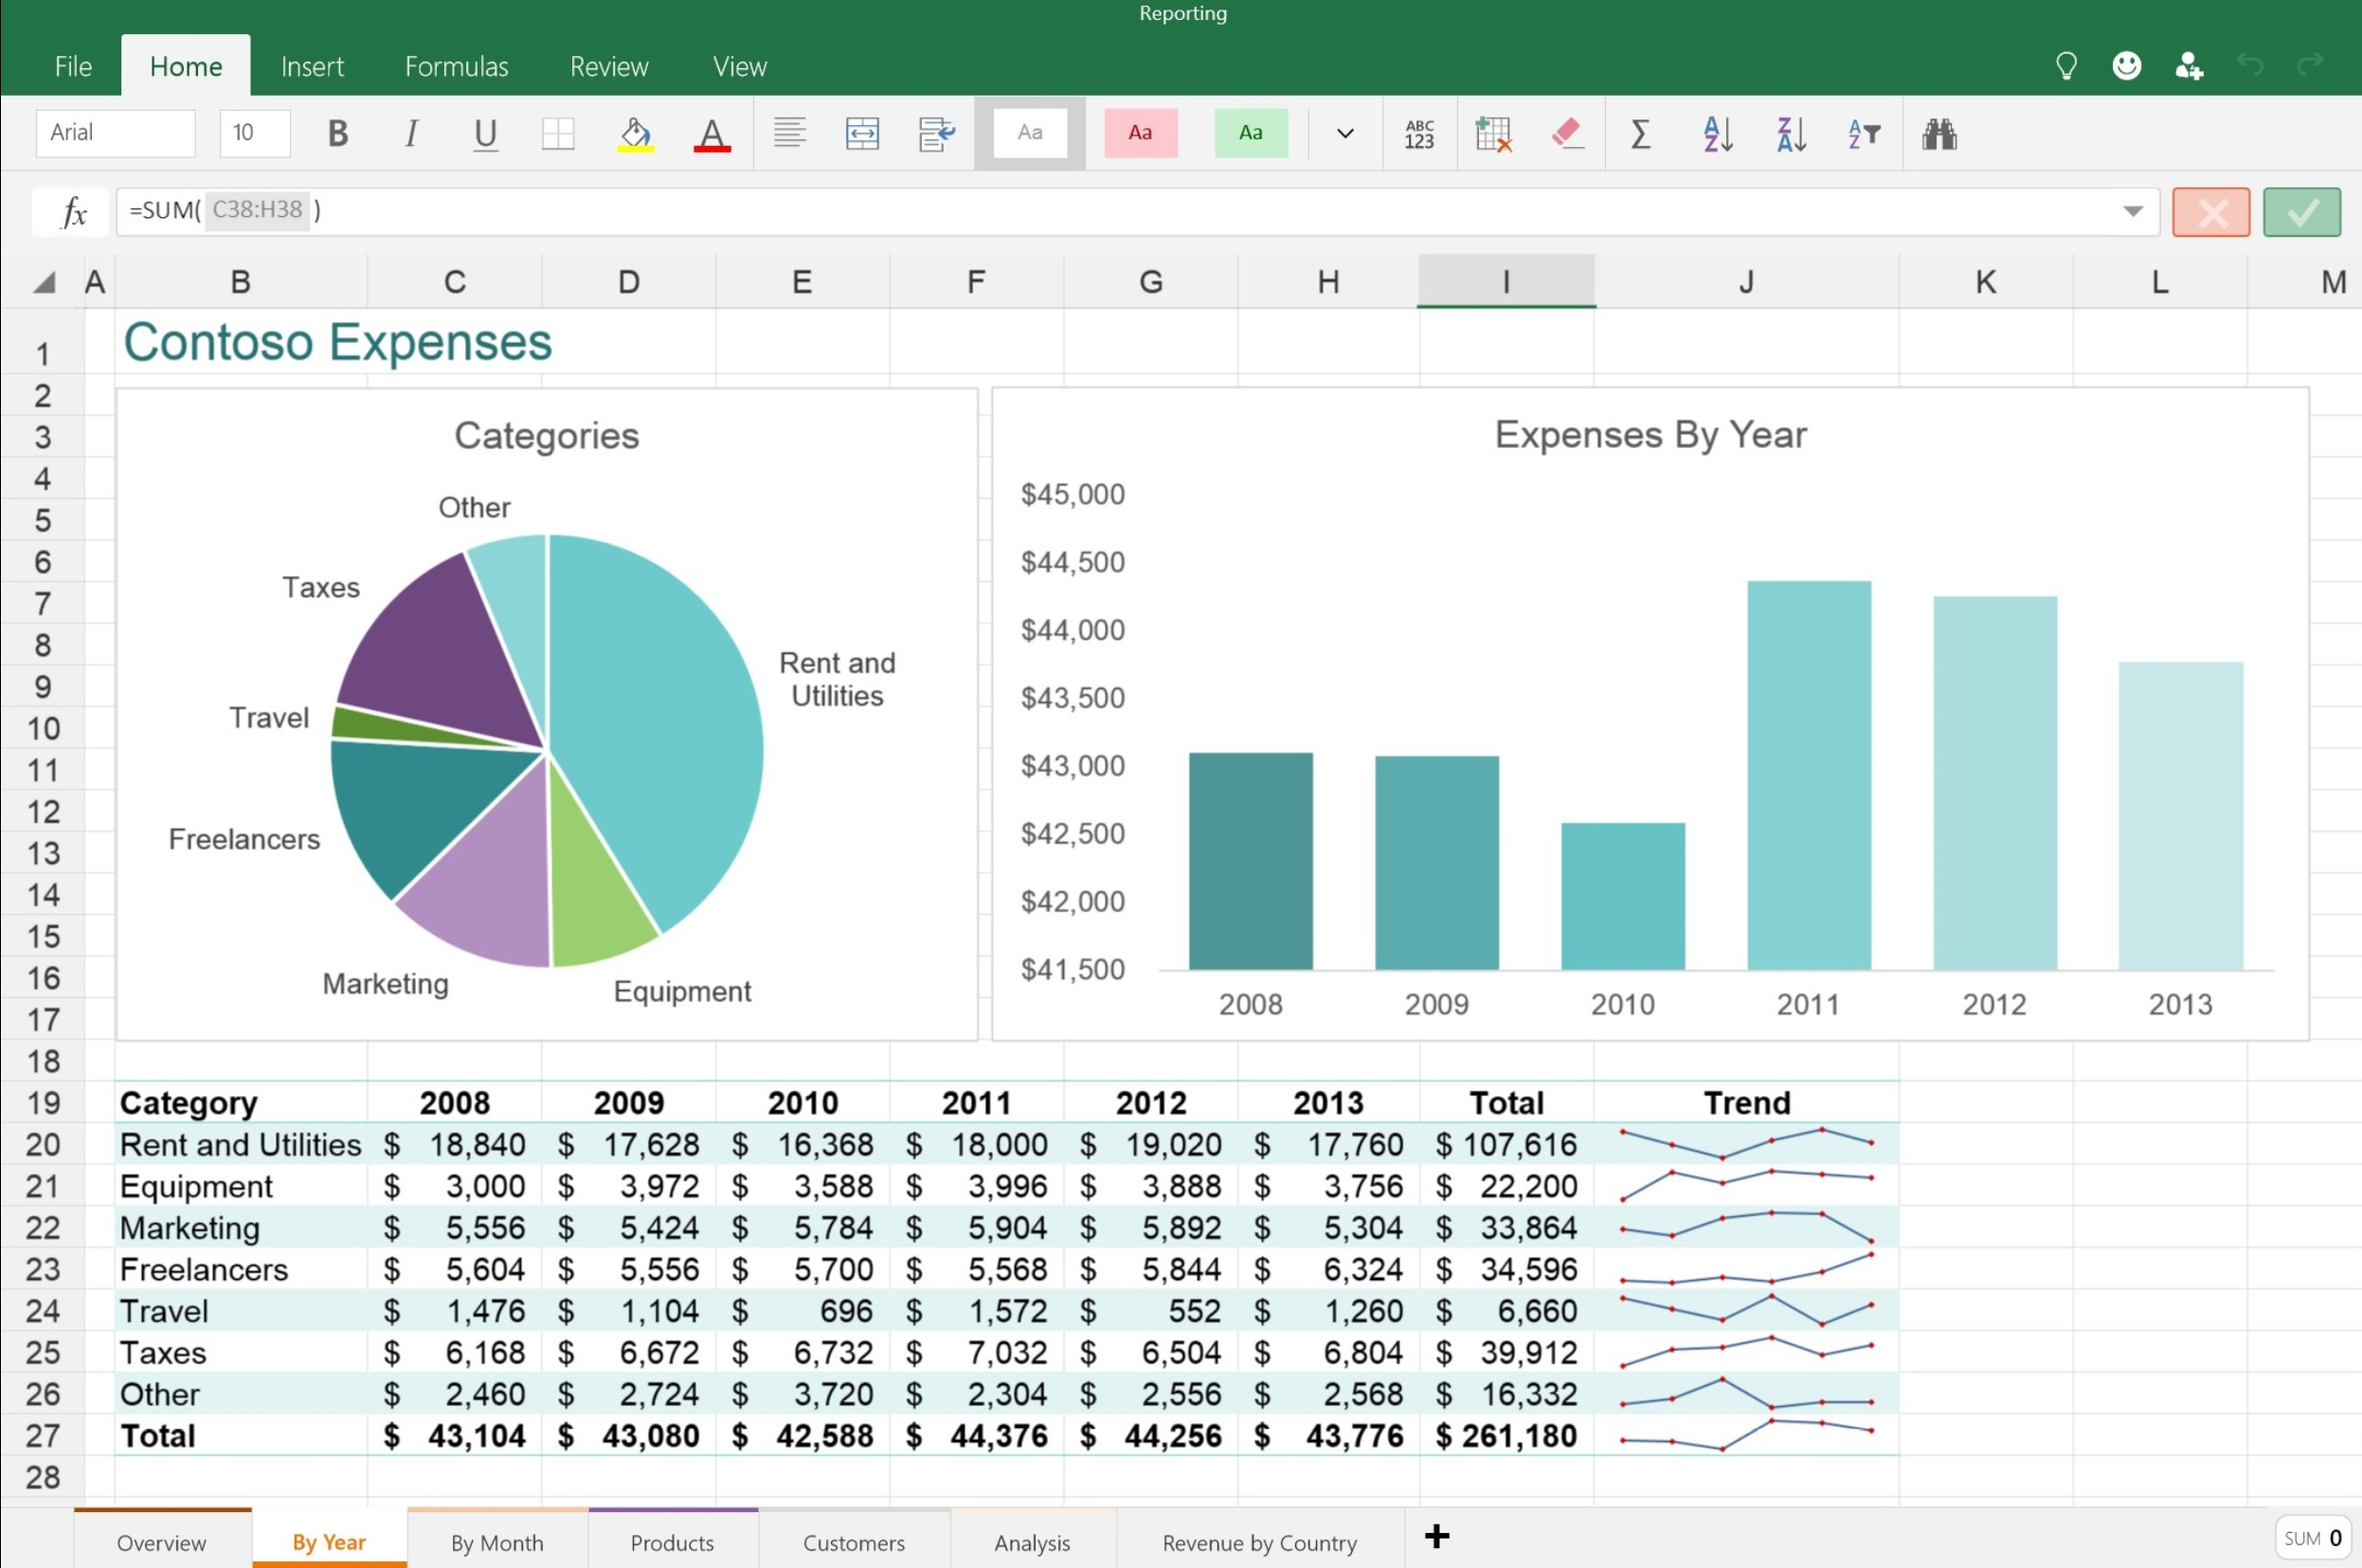 Ediblewildsus  Mesmerizing Features Available In The New Word Excel And Powerpoint Apps For  With Interesting Excel Touch App  With Nice Setting Print Area In Excel Also How To Combine Two Excel Files In Addition How To Make Table In Excel And Converting Text To Number In Excel As Well As Import Excel Into Quickbooks Additionally Insert Checkbox Excel From Mspowerusercom With Ediblewildsus  Interesting Features Available In The New Word Excel And Powerpoint Apps For  With Nice Excel Touch App  And Mesmerizing Setting Print Area In Excel Also How To Combine Two Excel Files In Addition How To Make Table In Excel From Mspowerusercom